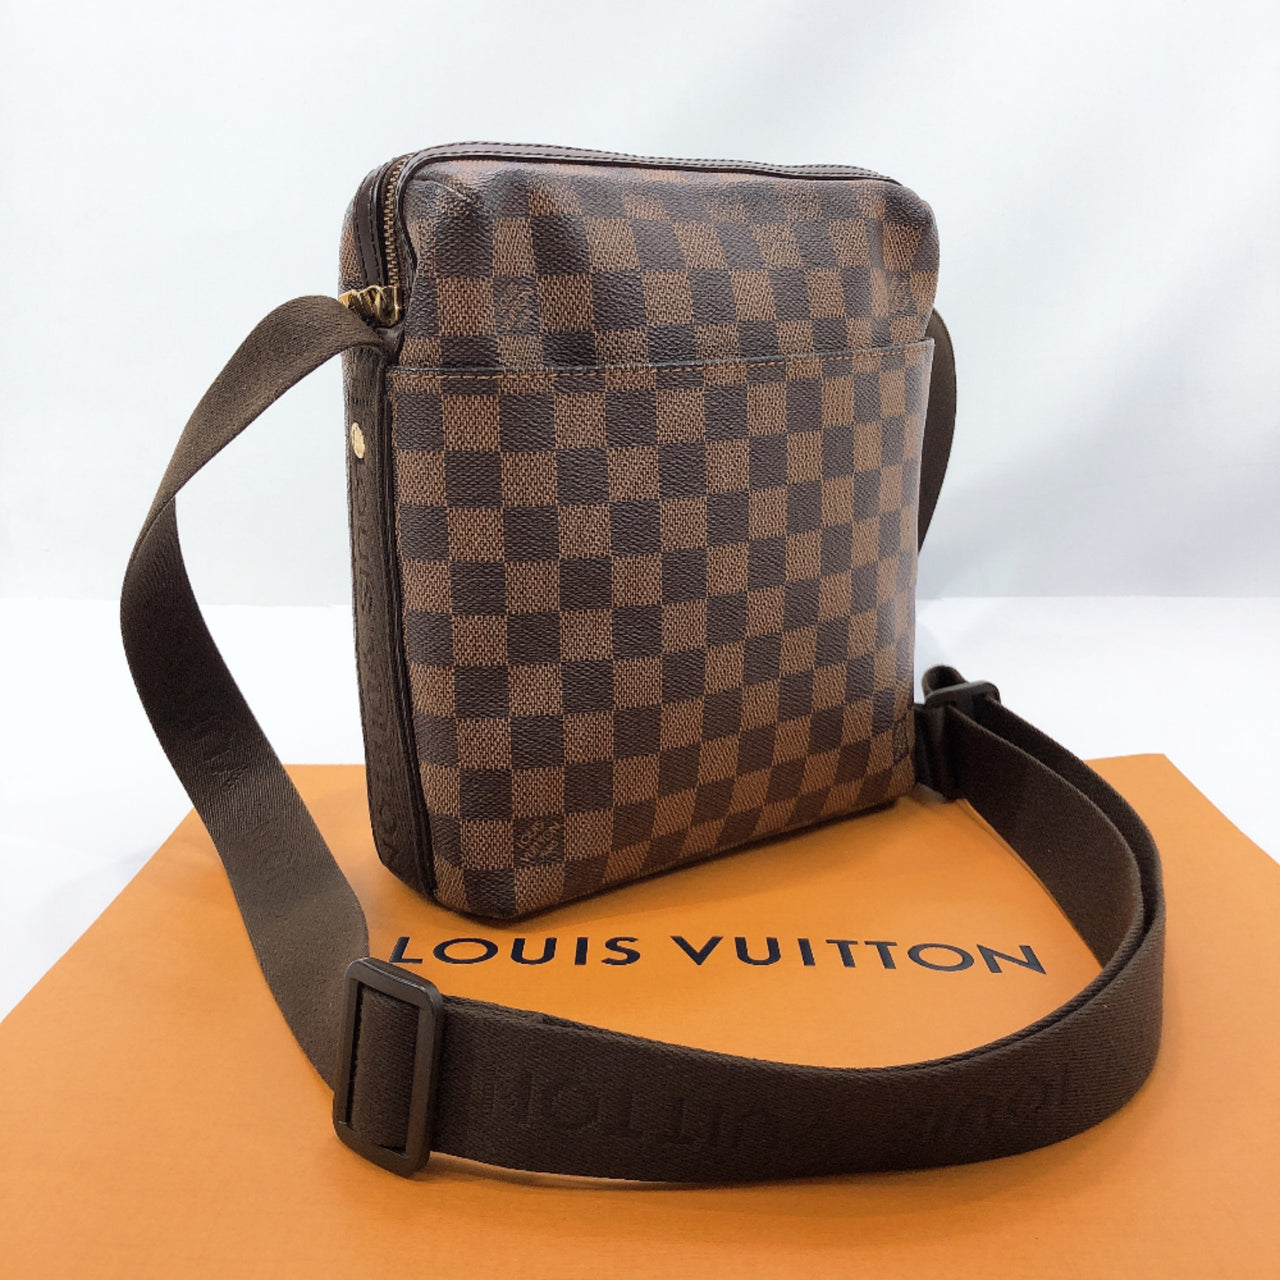 LOUIS VUITTON Shoulder Bag N41135 Trotter Bobul Damier canvas Brown unisex Used